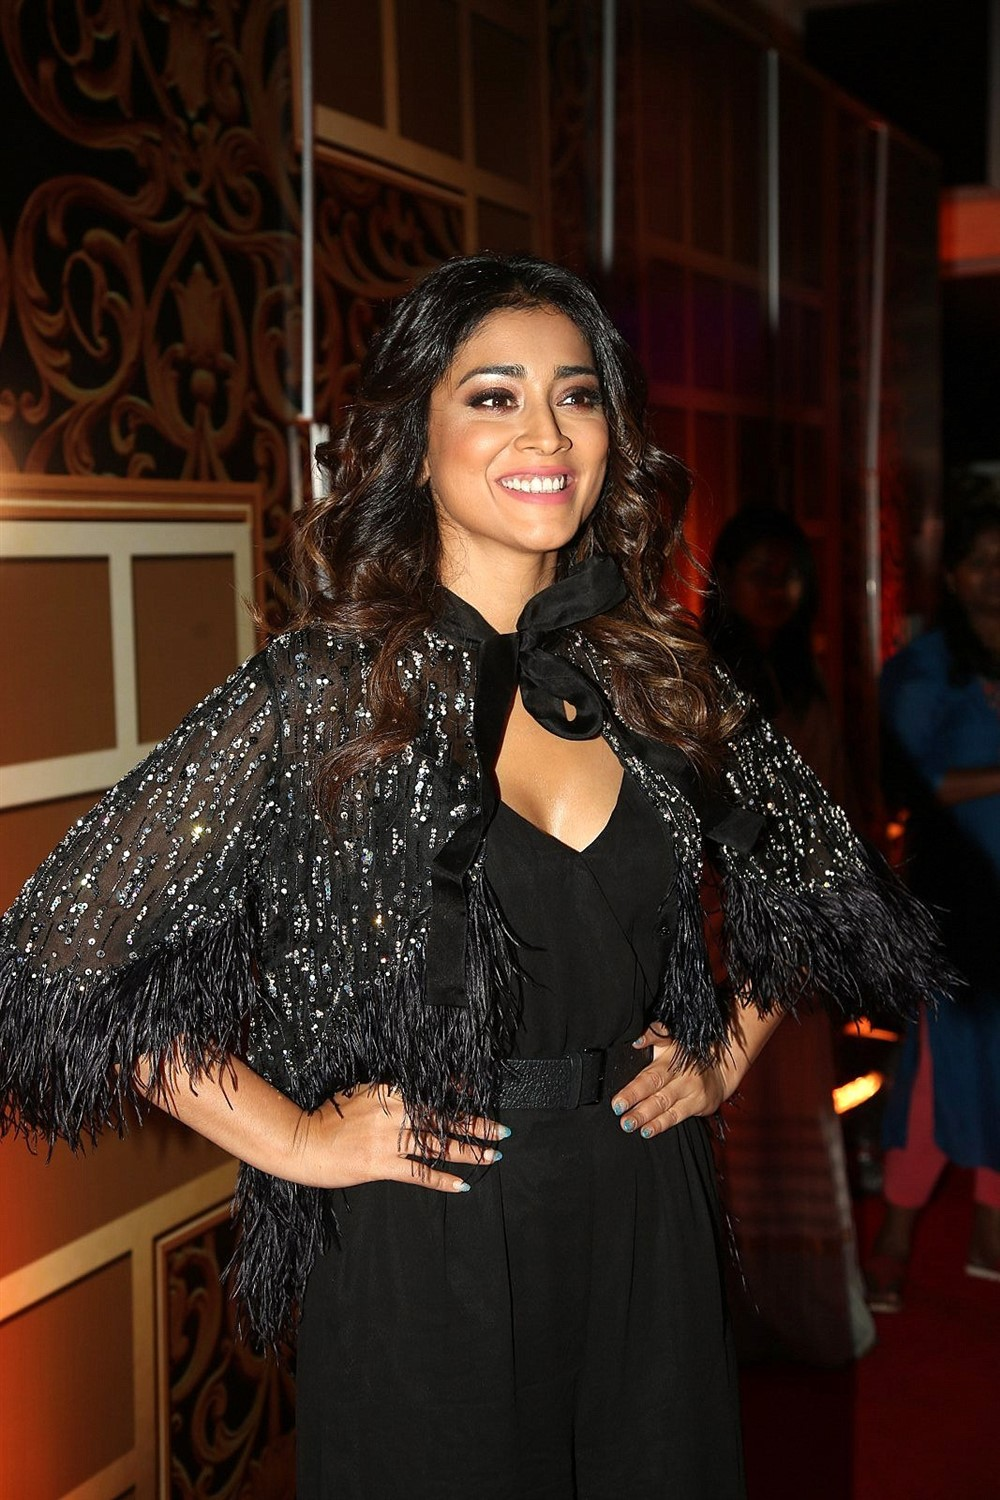 Actress Shriya Saran Pictures @ Zee Telugu Kutumbam Awards 2019 Red Carpet